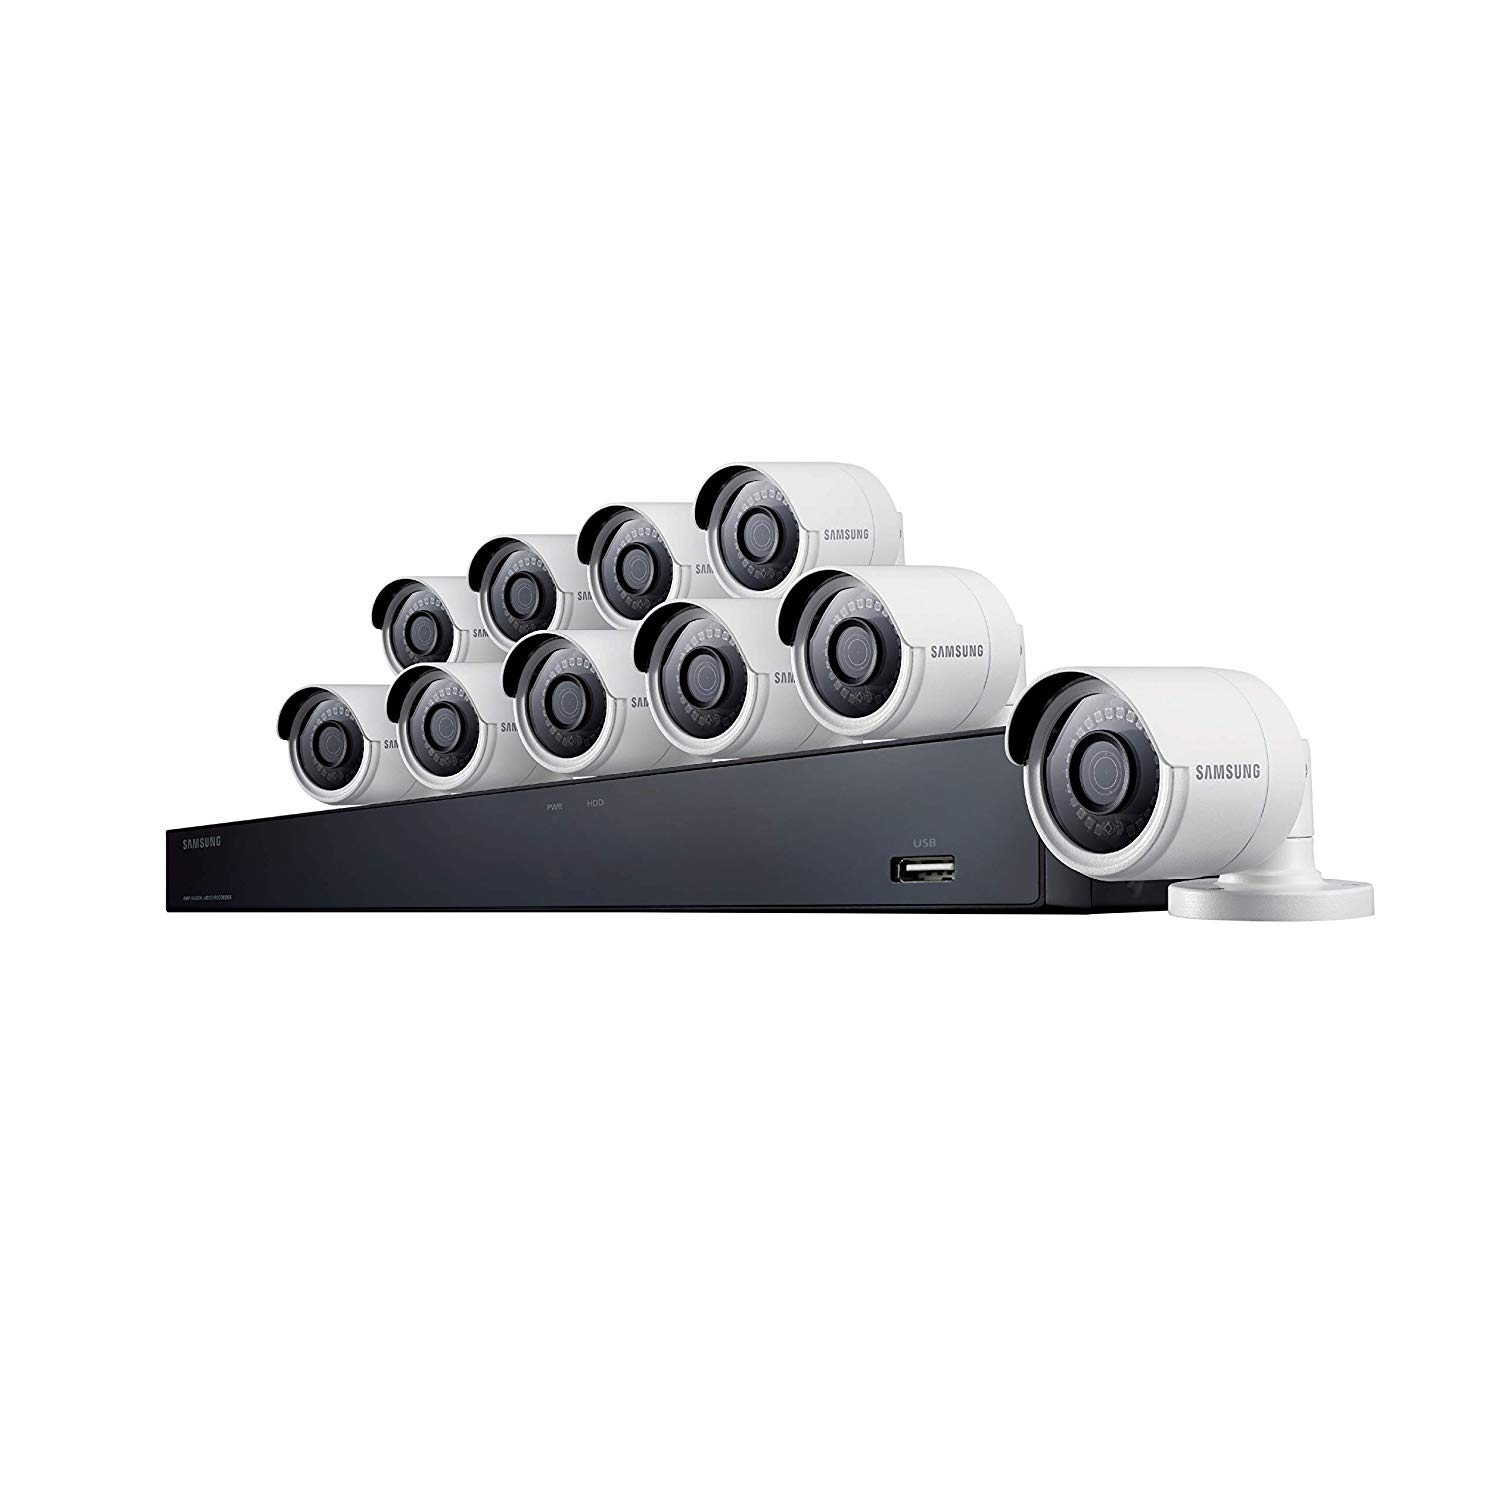 Samsung 16 Channel 4 MP Security System with 2TB Hard Drive, 10 Super HD Bullet